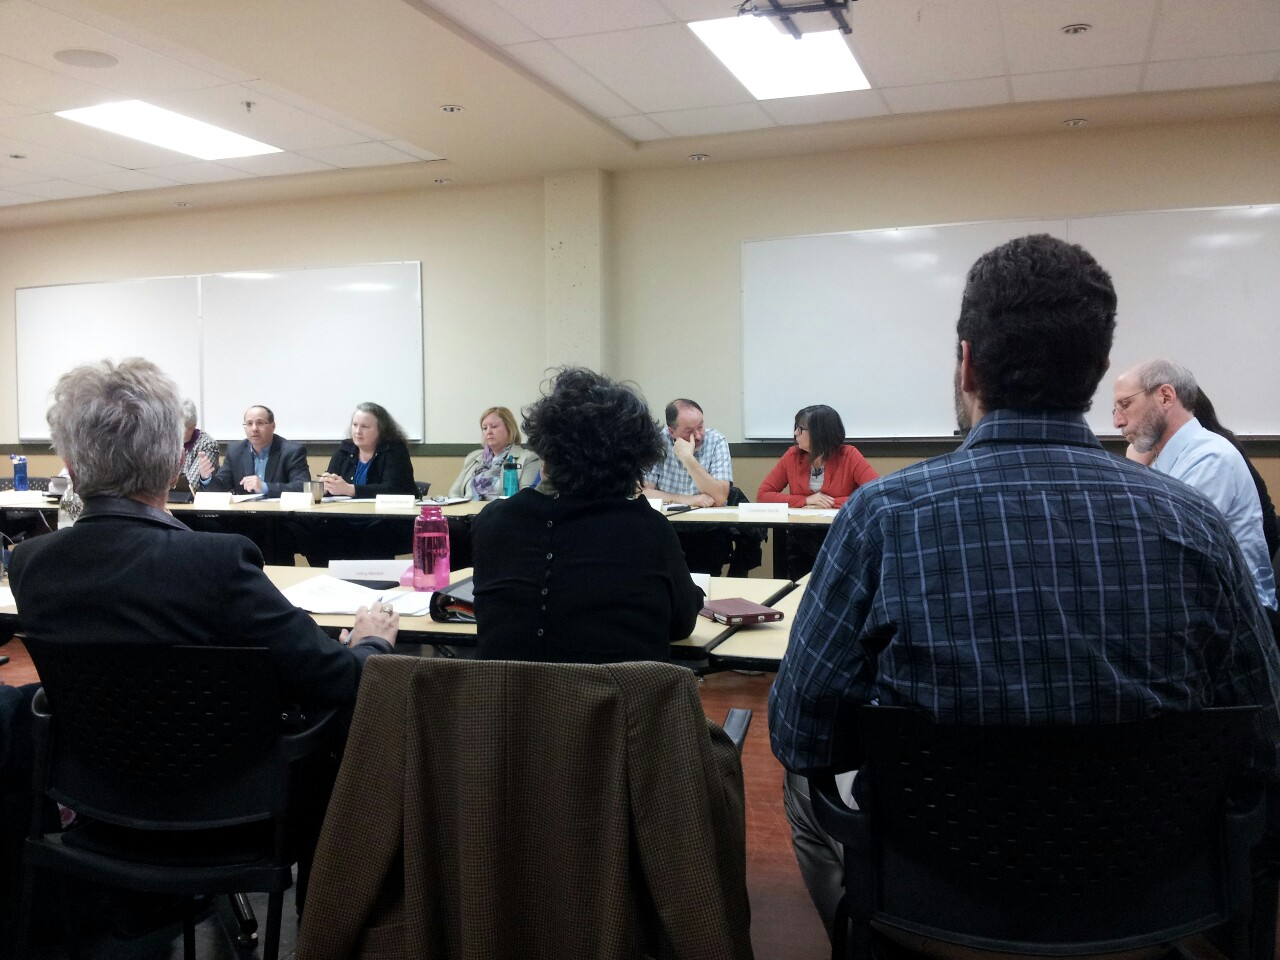 UFV faculty and administration gathered to talk about the review process for the Writing Centre. VP academic Eric Davis (far right) chaired the meeting.